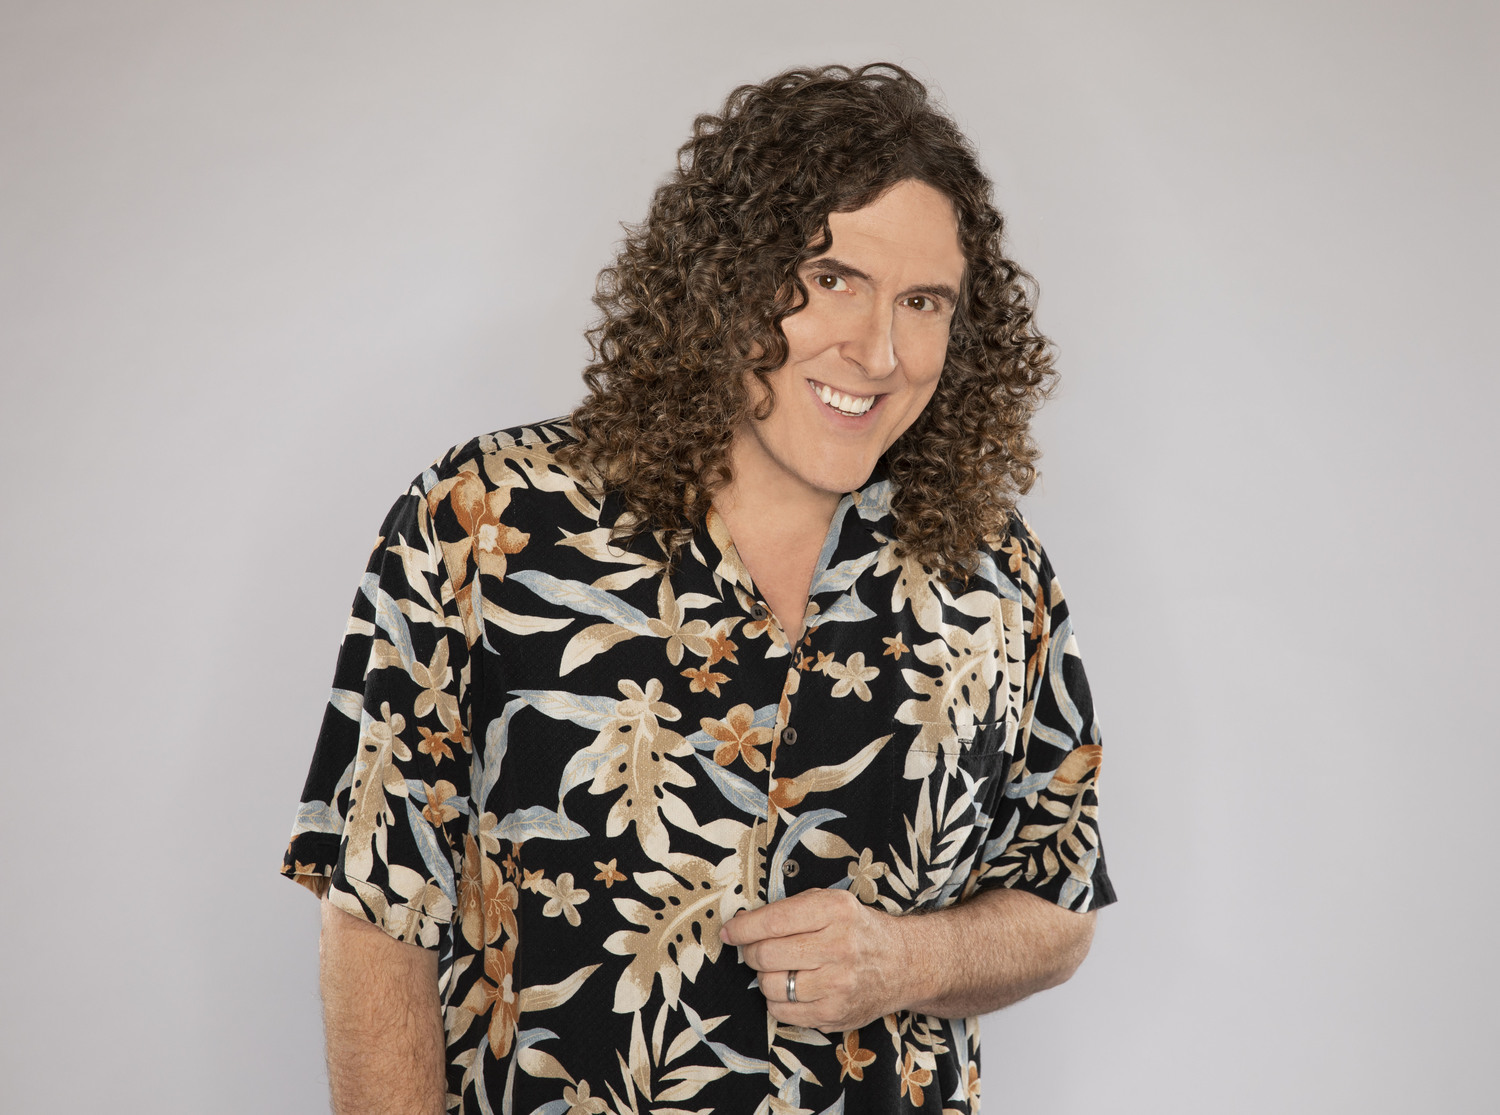 BWW Interview: 'Weird Al' Yankovic Talks About Broadway, Nerd Life, Jelly Donuts, and Touring with a Symphony